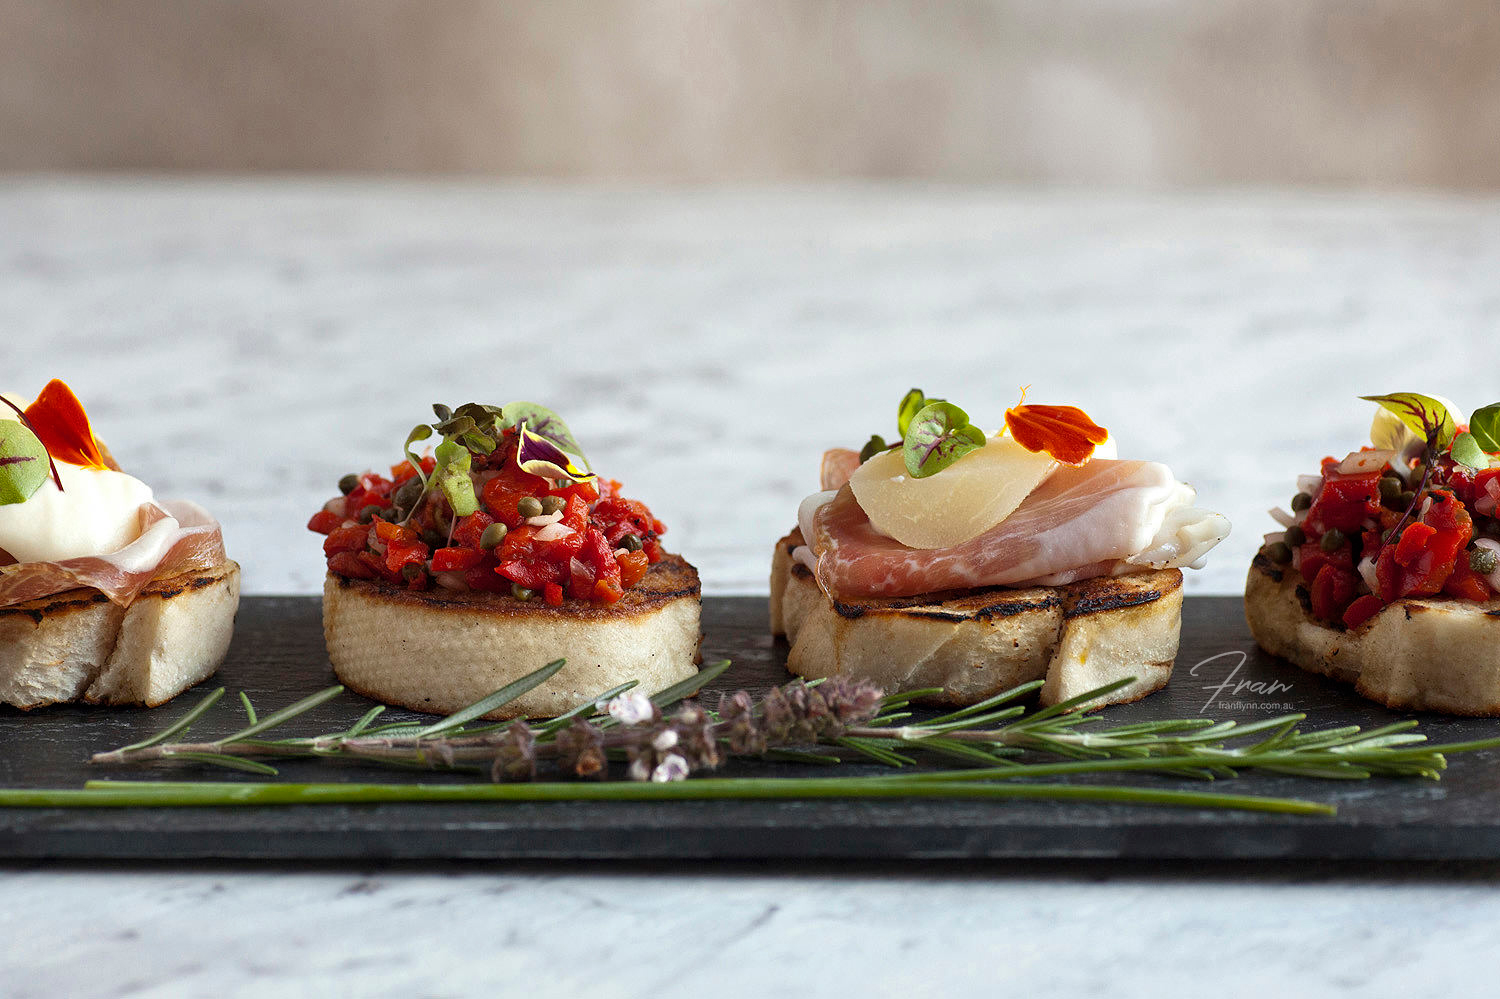 Photographed for Balthazar Wine & Dining, Crowne Plaza Surfers Paradise